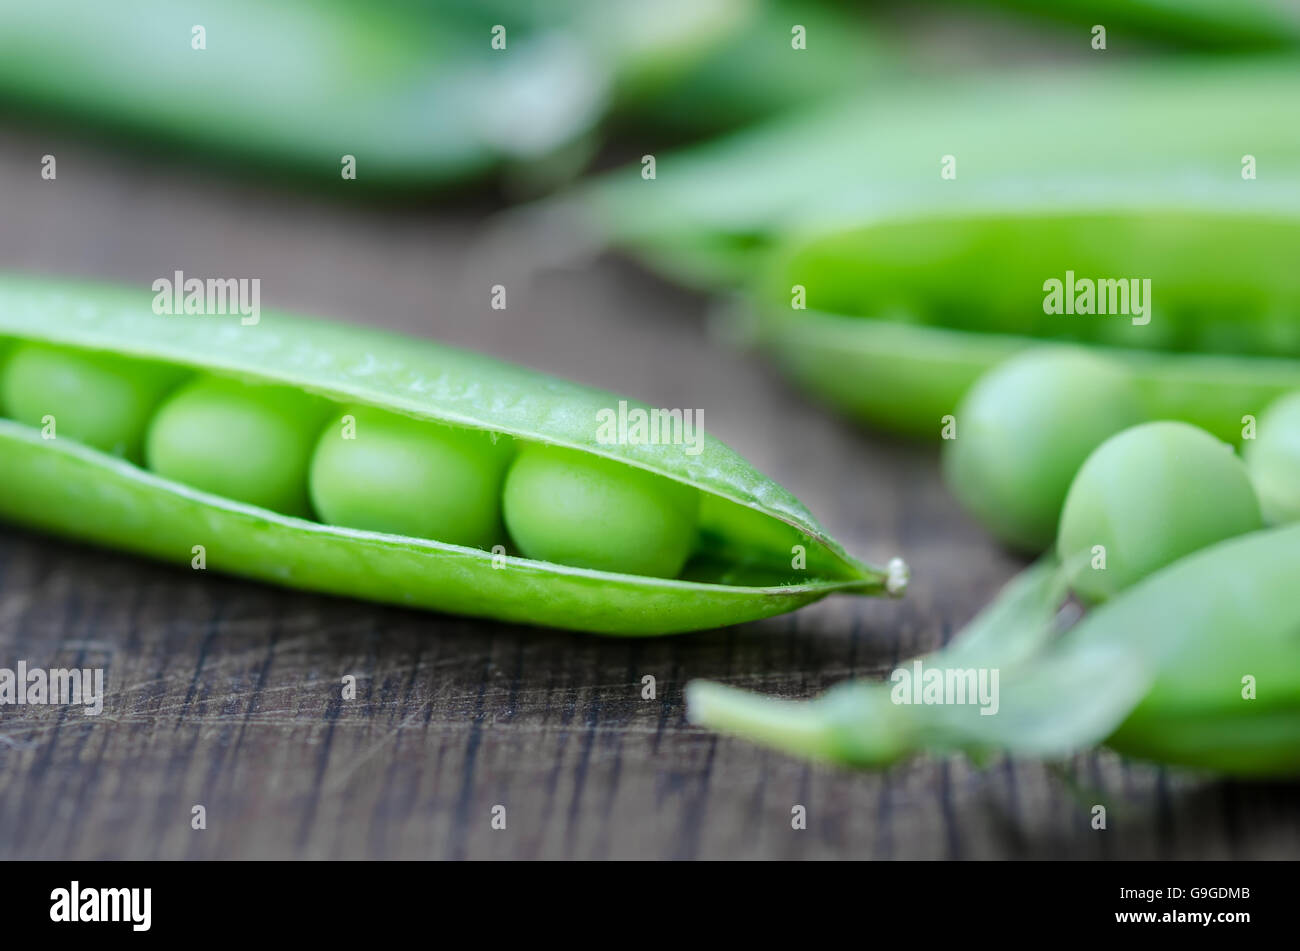 Organic peas pods on wooden table, rustic style - Stock Image